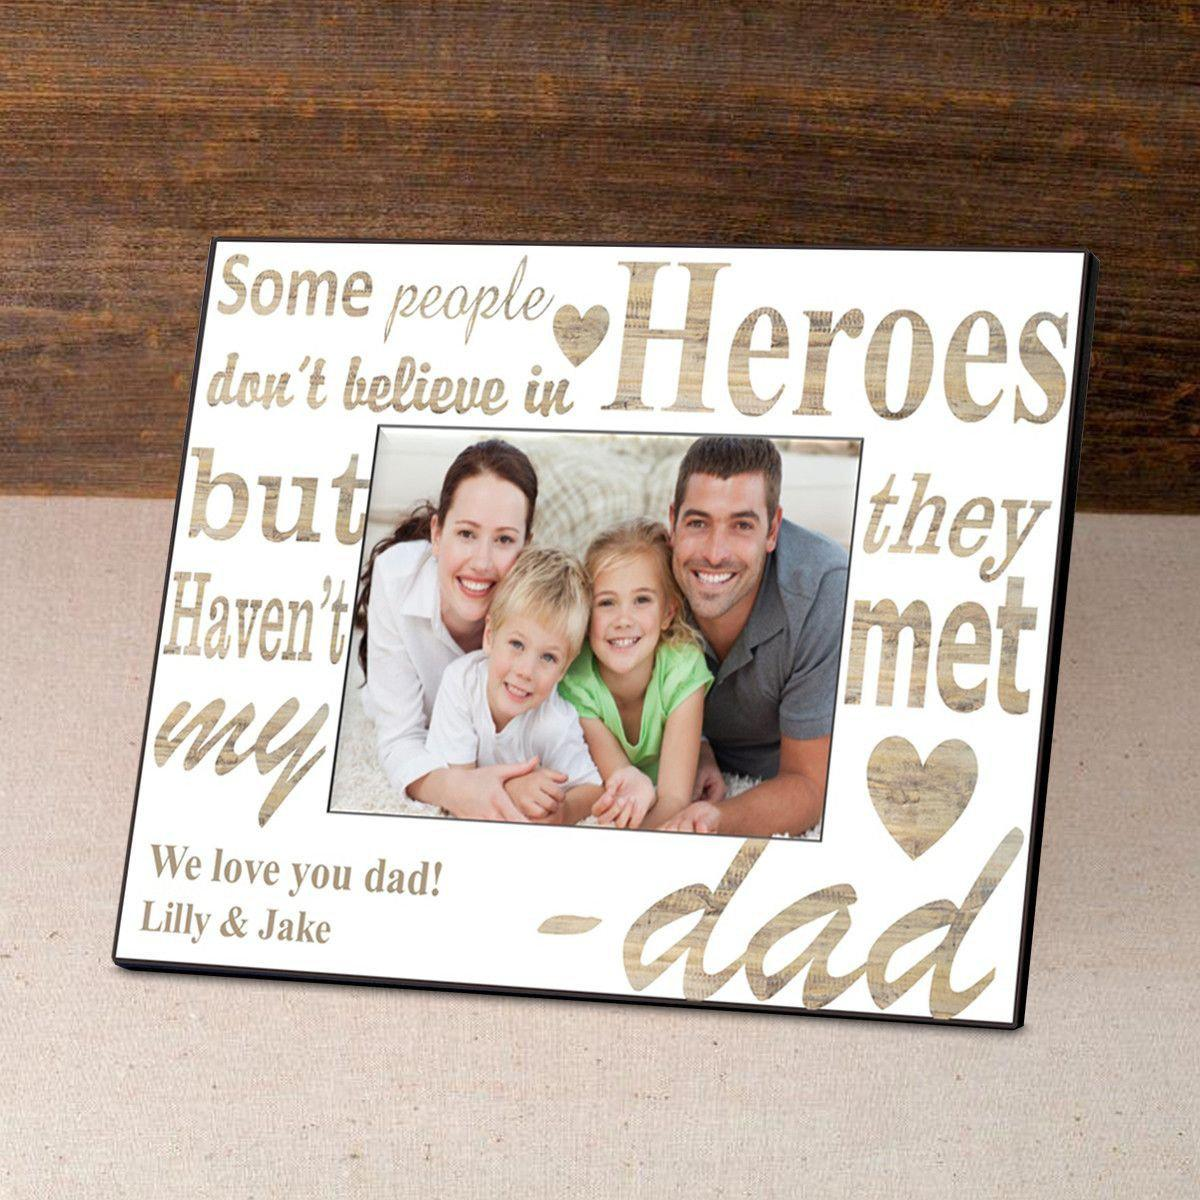 Personalized Picture Frames - Engraved Picture Frames